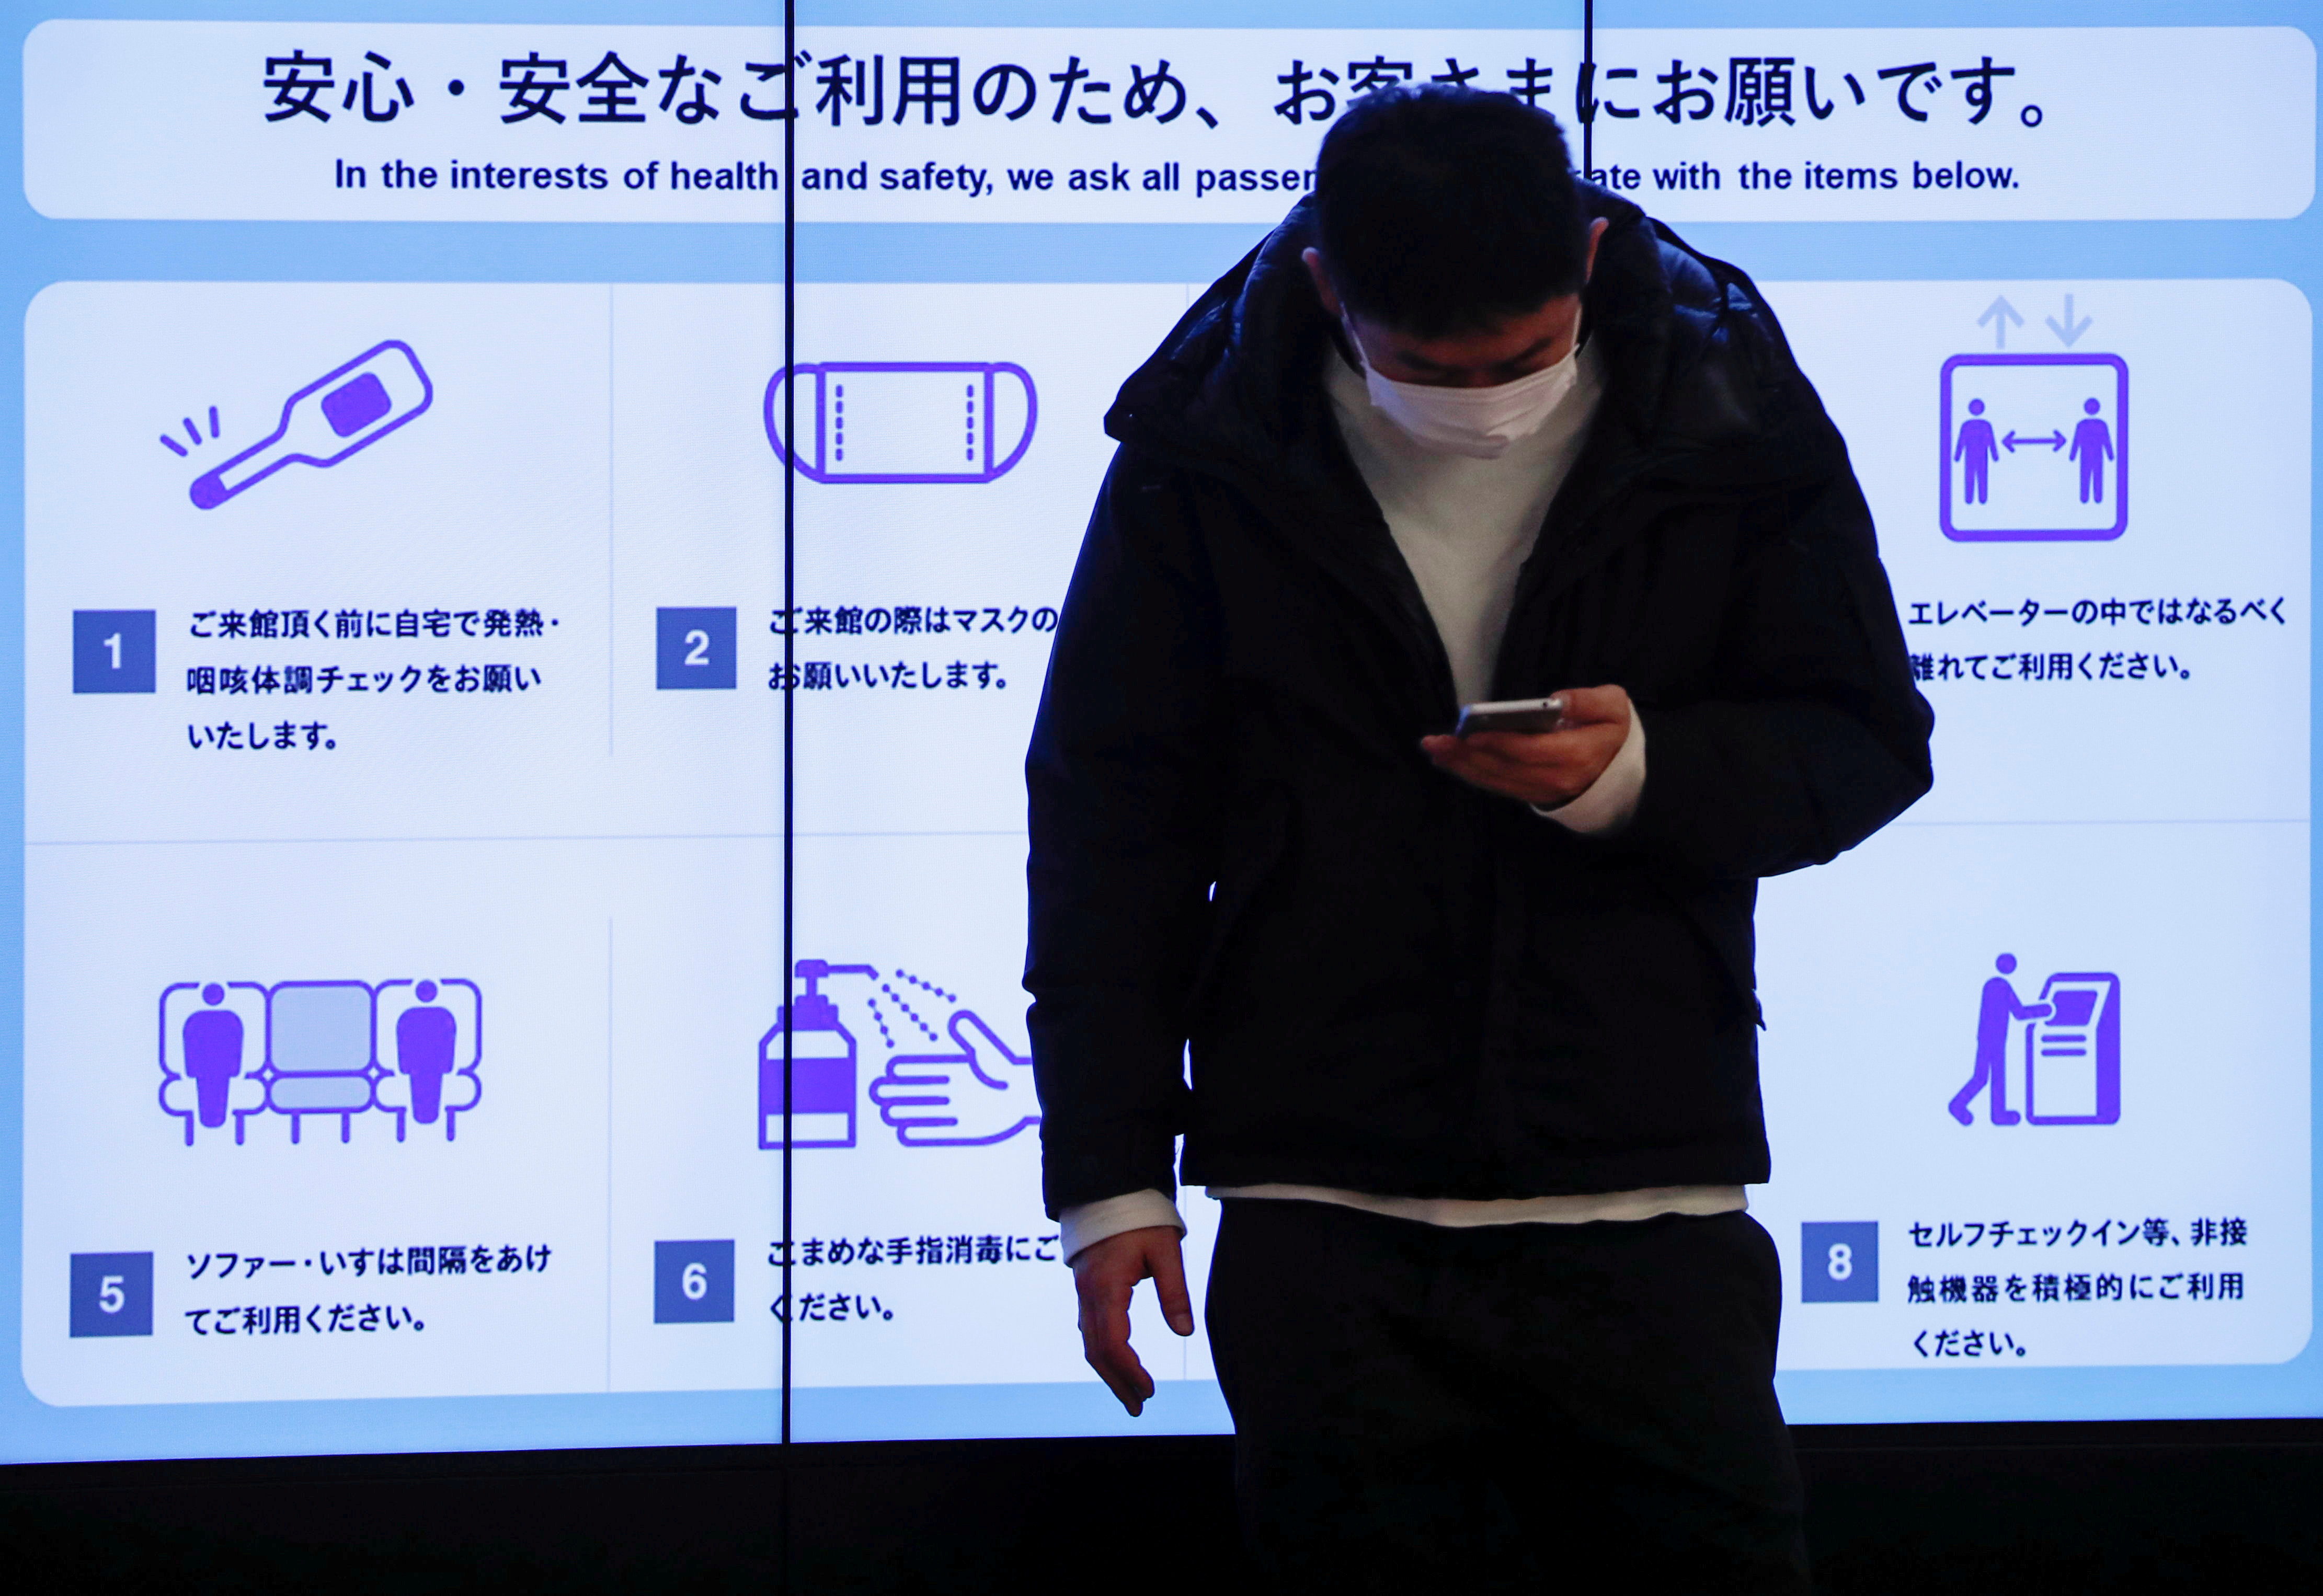 A man wearing a protective face mask stands in front of an electric screen displaying initiatives to prevent infections at the arrival zone of the international flight terminal at Tokyo International Airport, commonly know as Haneda airport, amid the coronavirus disease (COVID-19) outbreak, in Tokyo, Japan December 28, 2020.  REUTERS/Issei Kato/File Photo